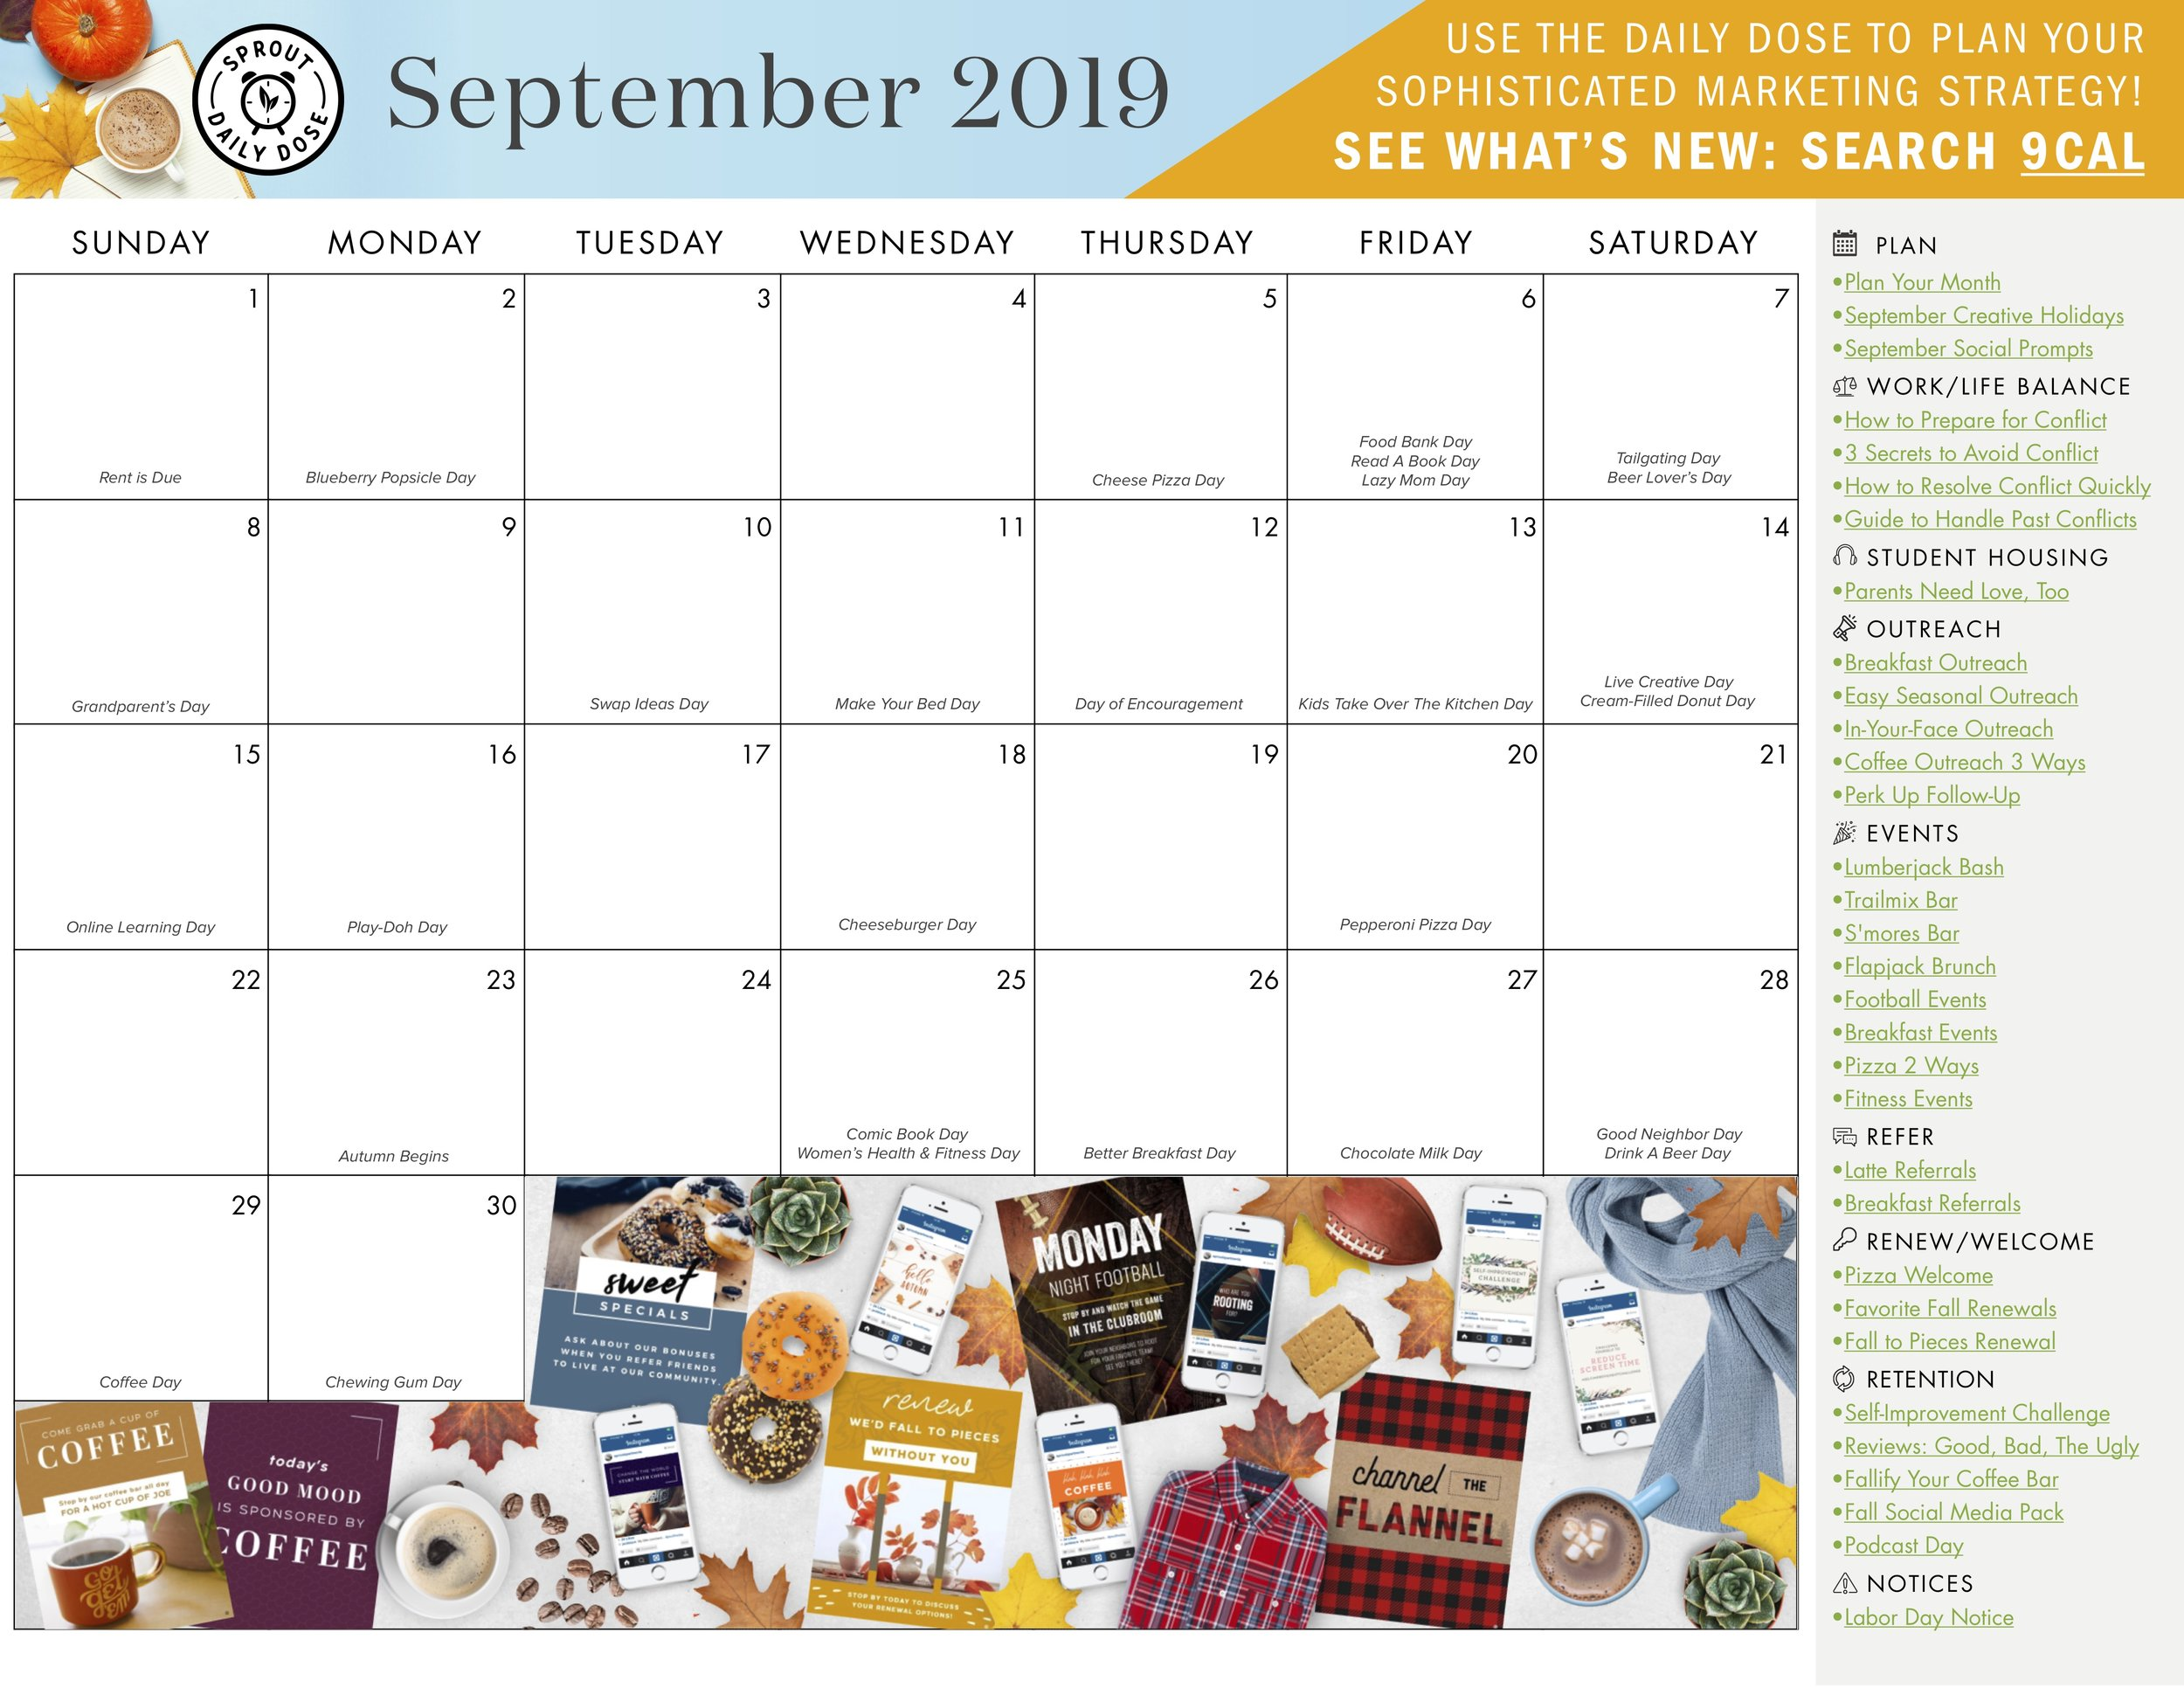 Grab the blank monthly calendar with links here to add your own initiatives.